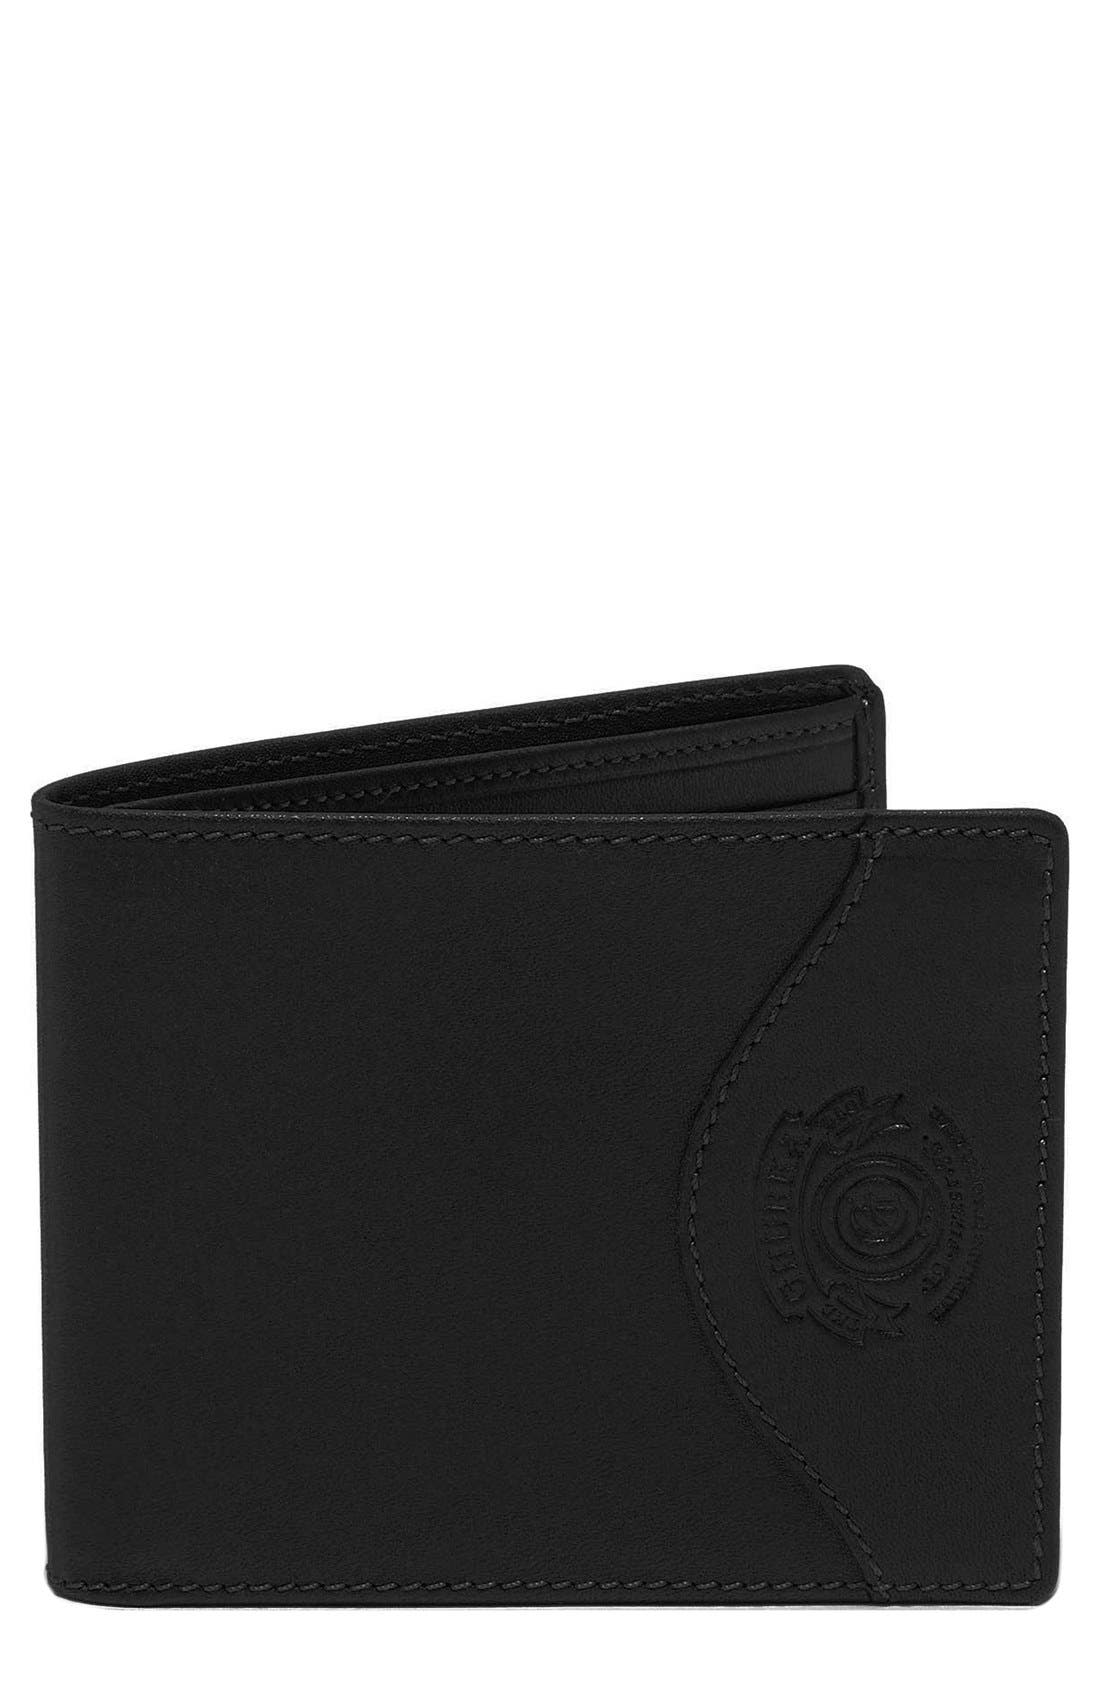 Alternate Image 1 Selected - Ghurka Classic Leather Wallet